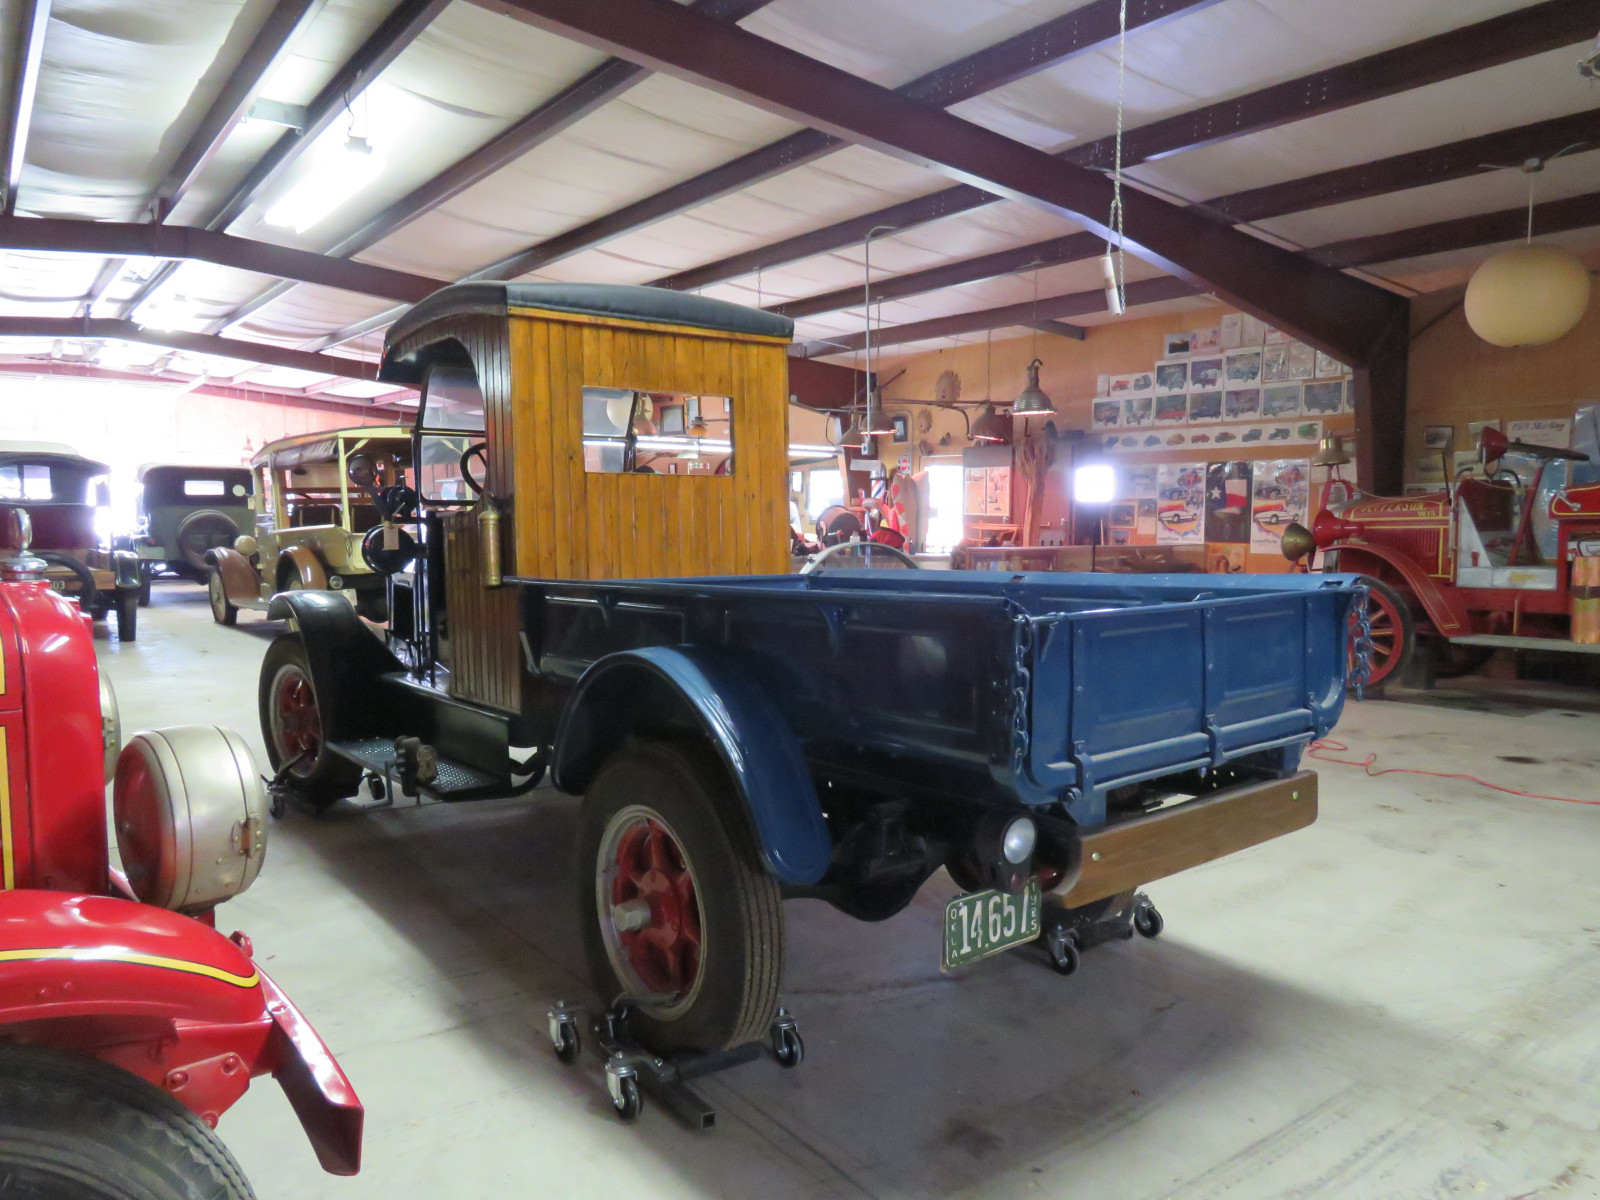 1925 International Model S 1 1/2 ton Express Truck - Image 4